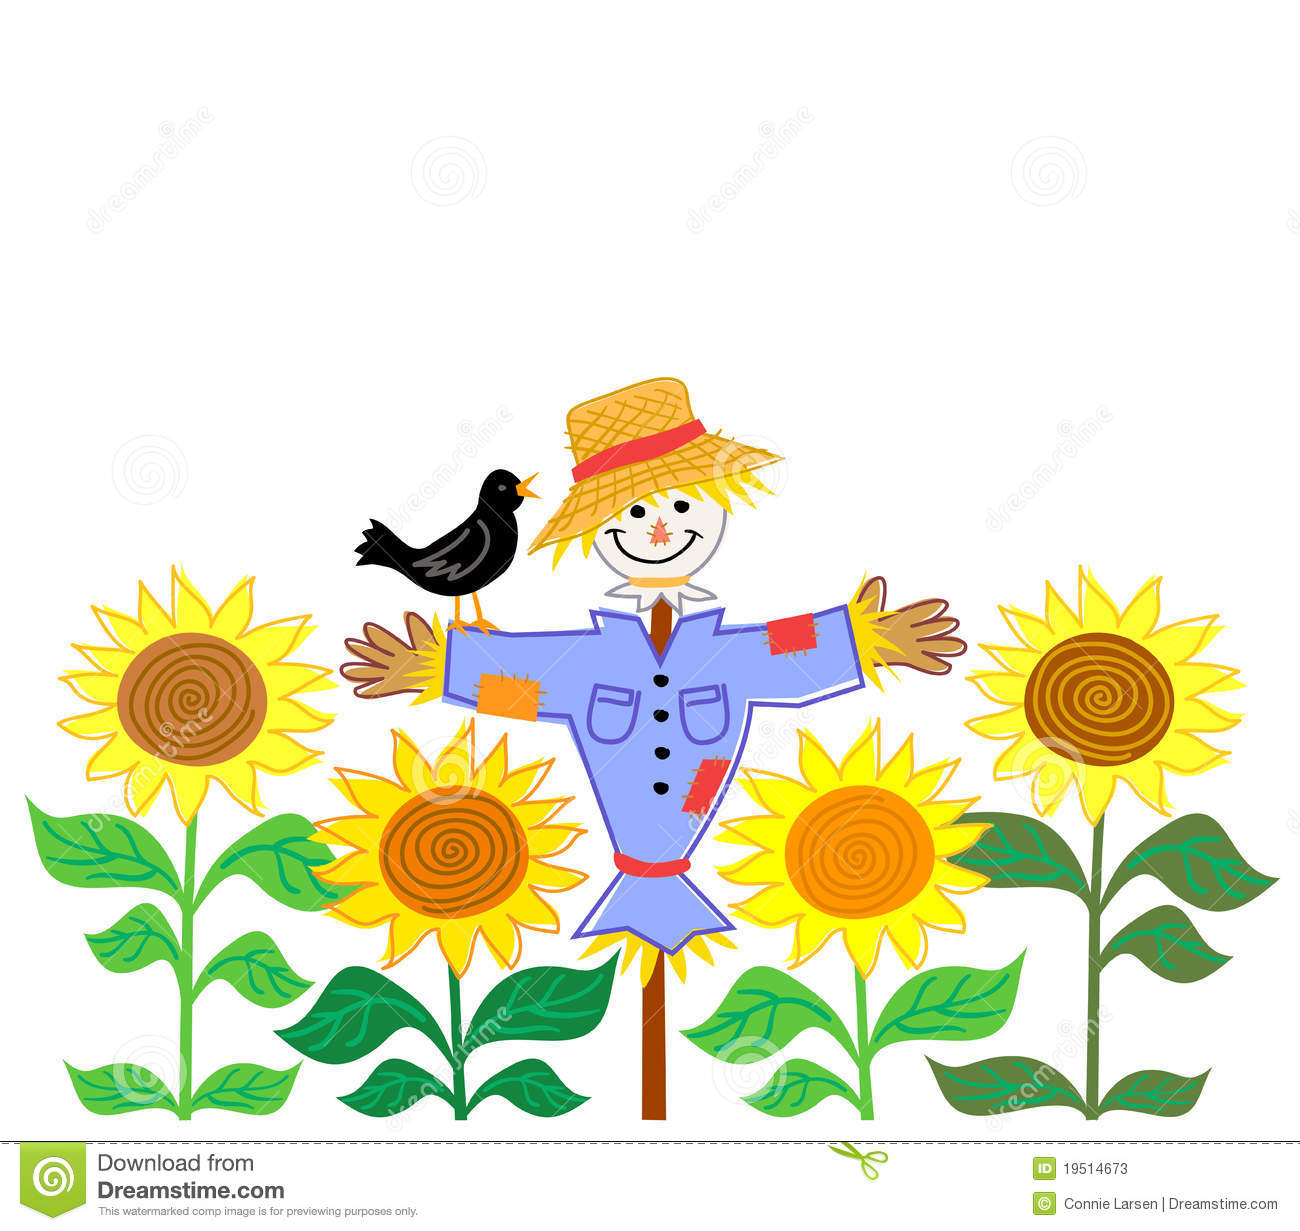 Cartoon illustration of a patchwork scarecrow in a field of sunflowers